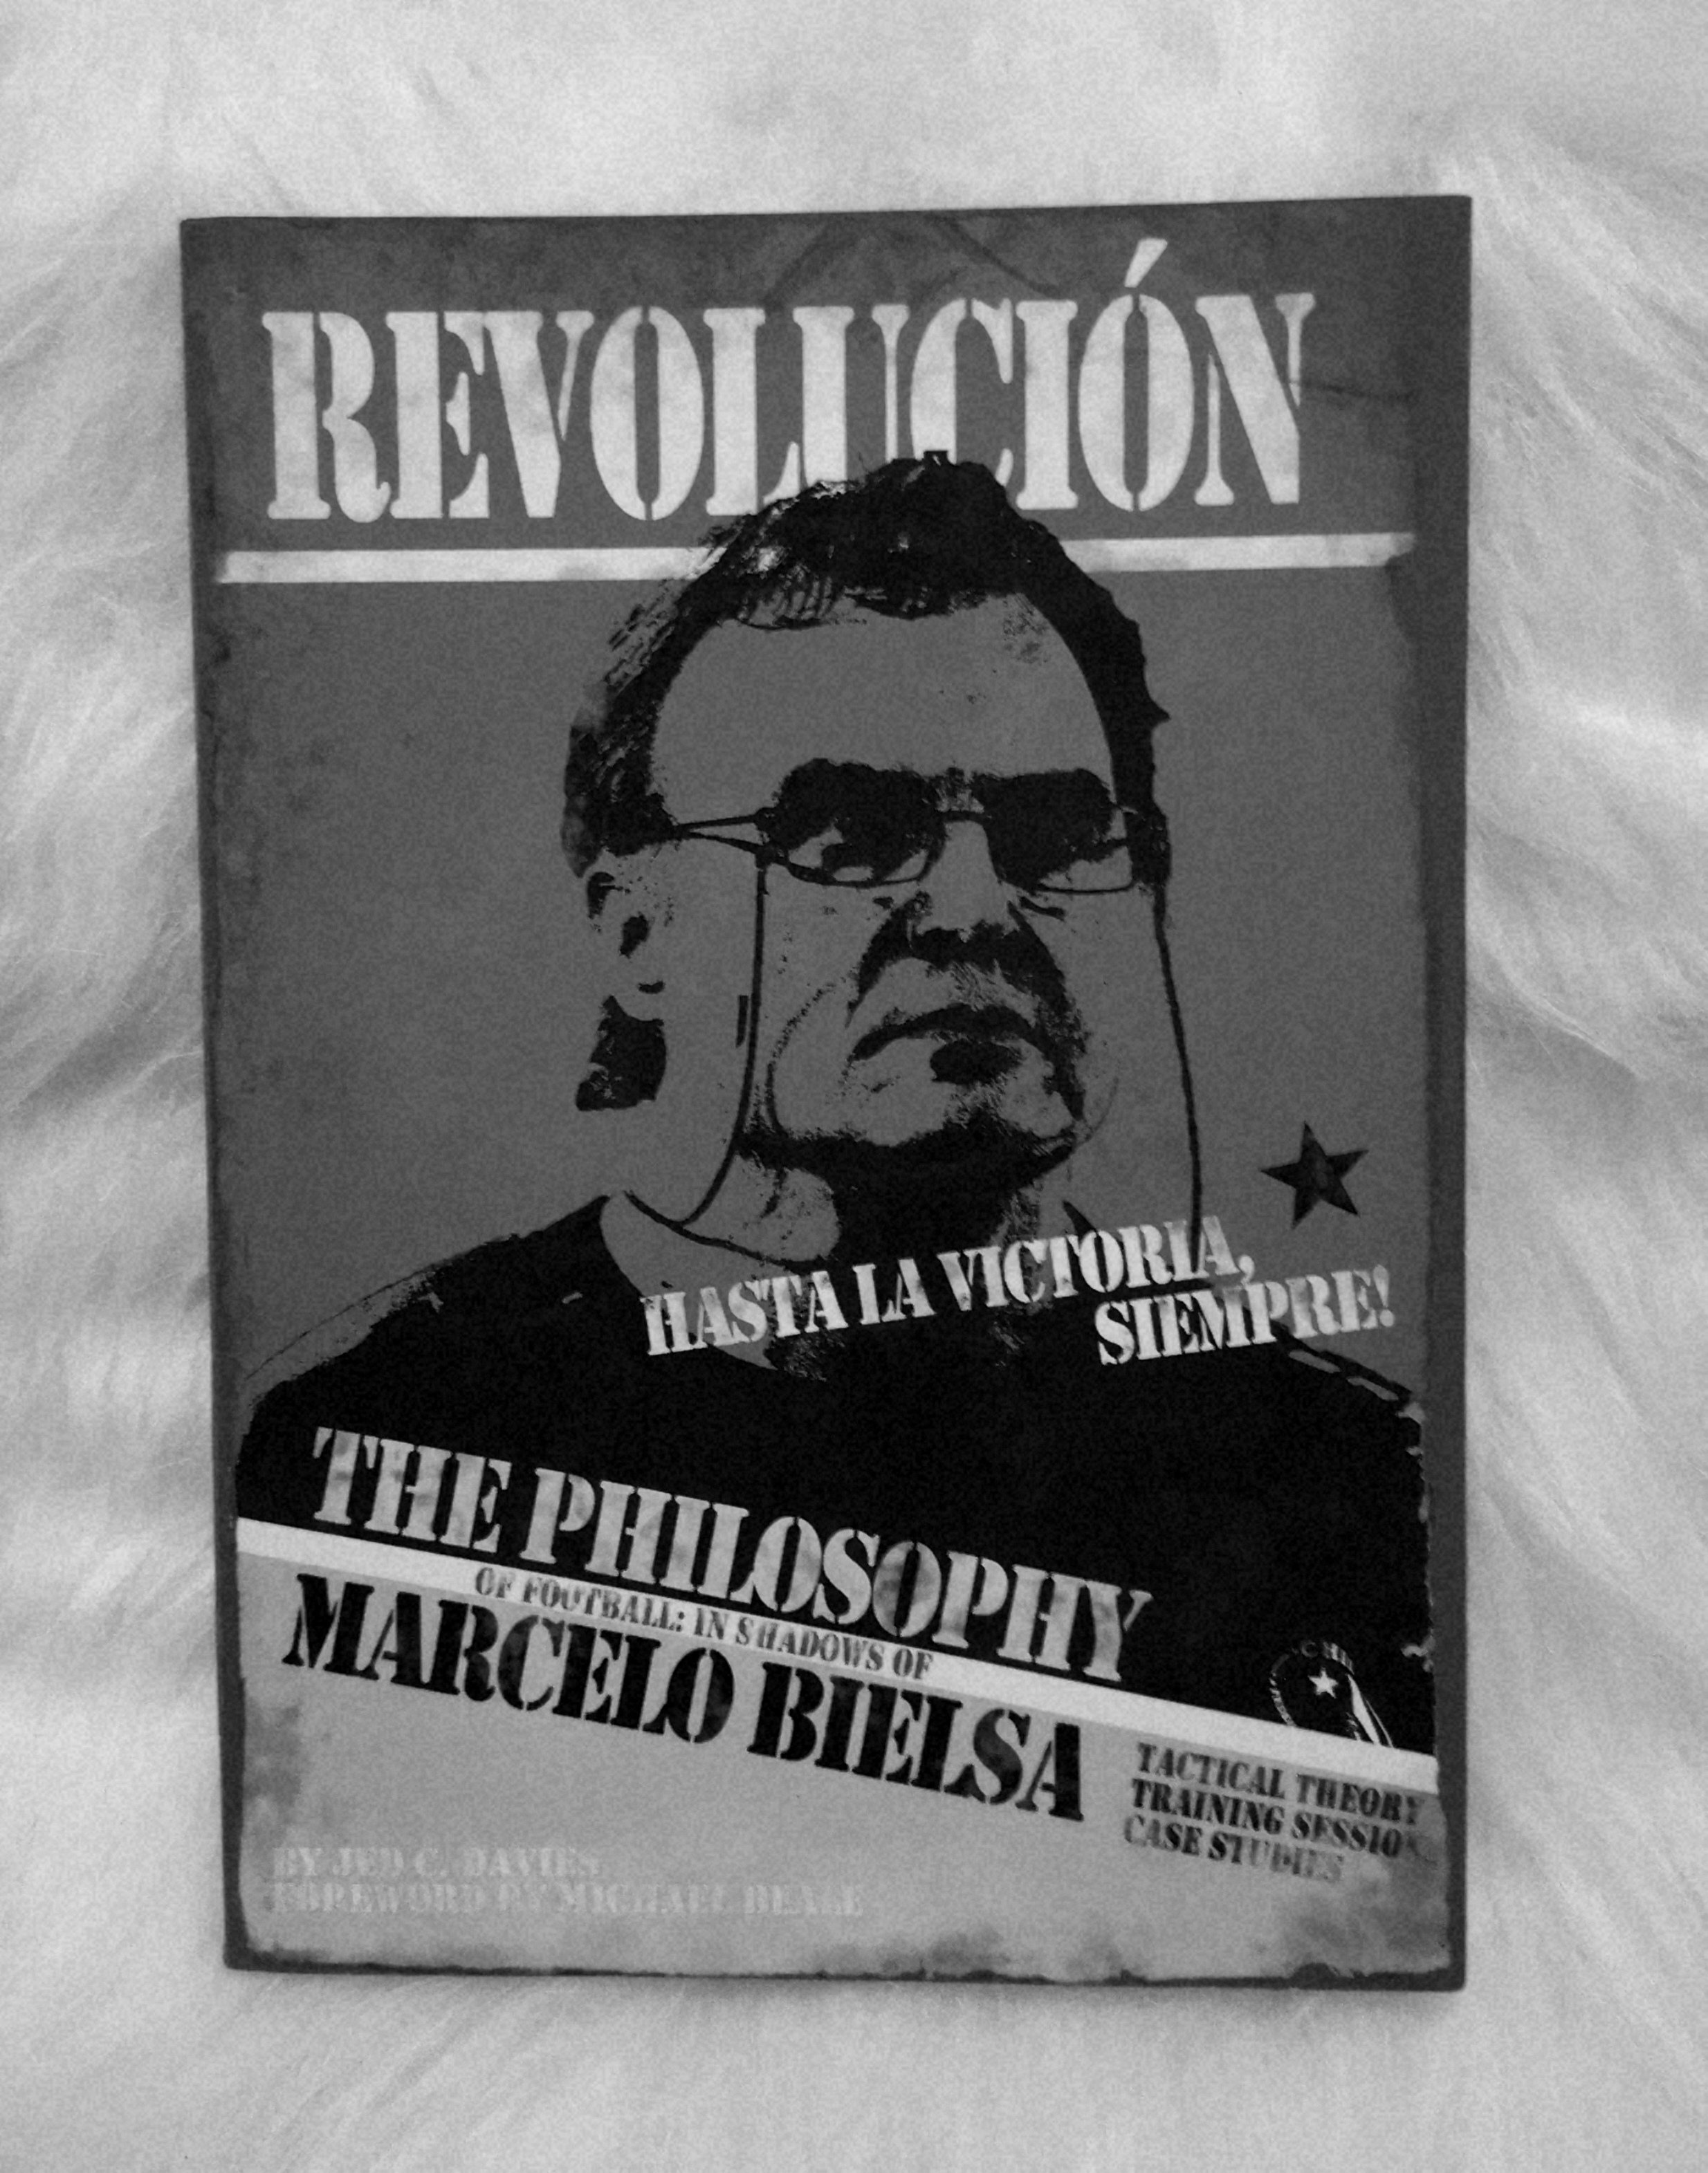 Buch: The Philosophy of Football: In shadows of Marcelo Bielsa